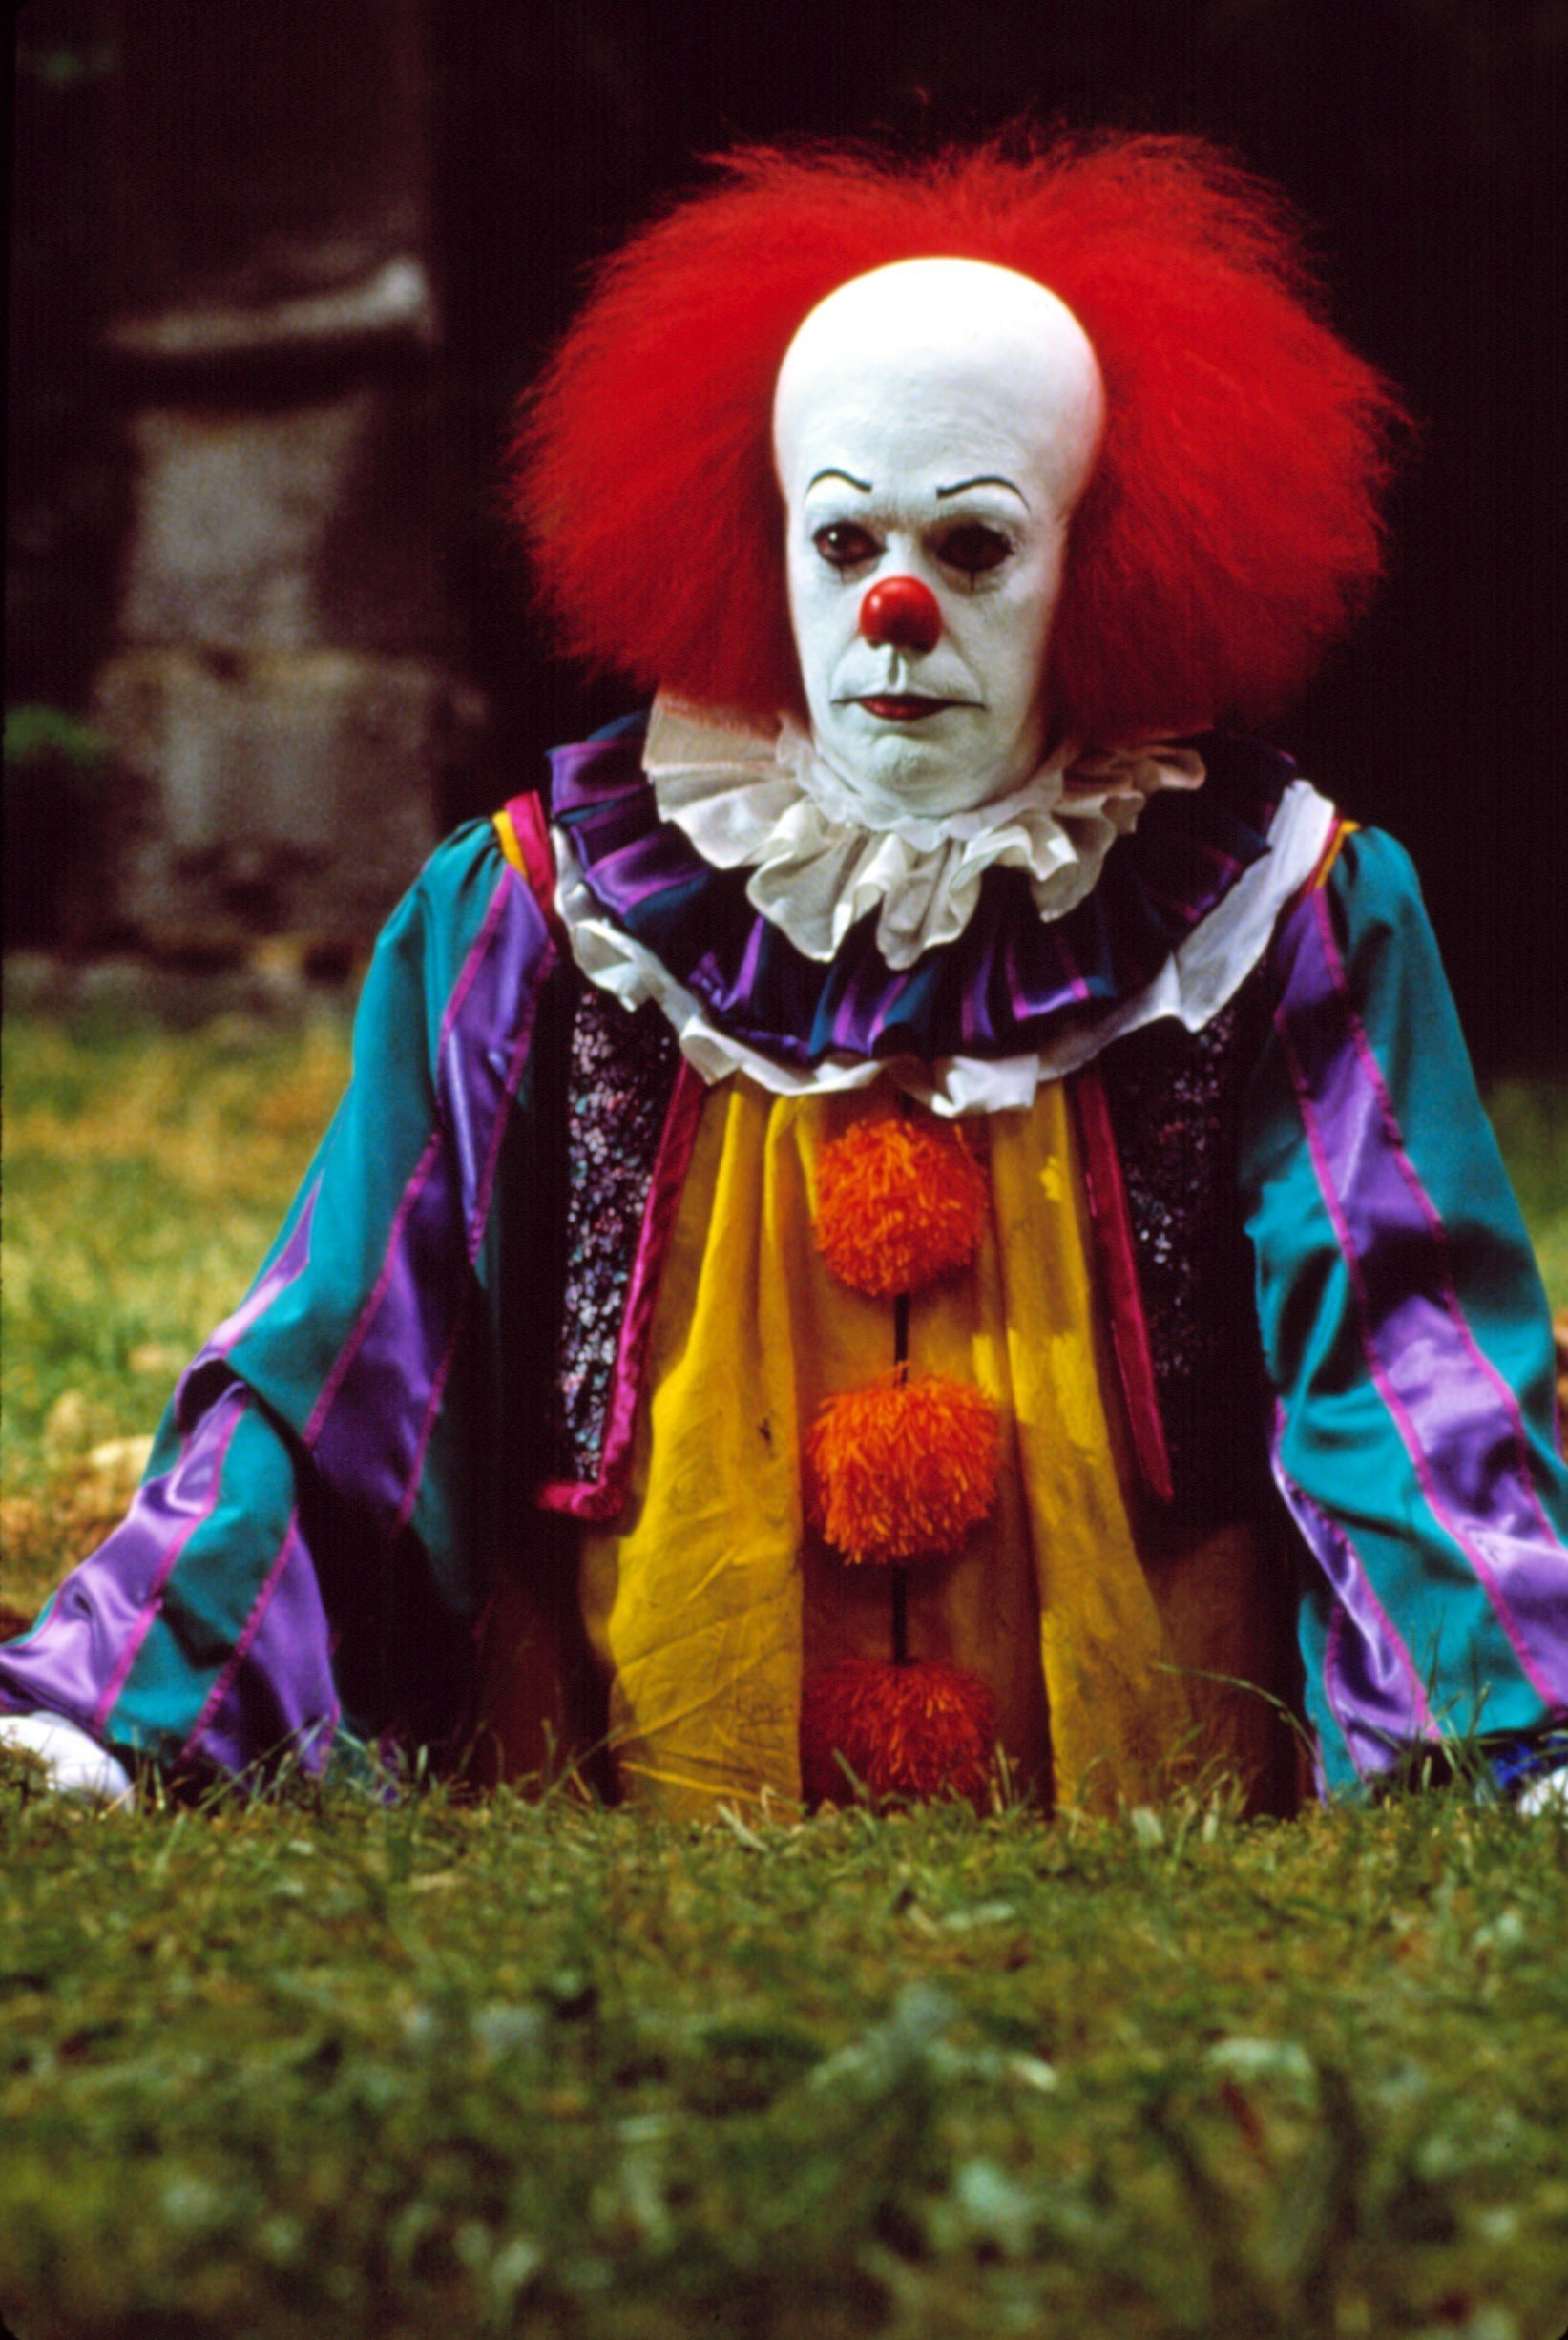 Pennywise the clown from IT!  sc 1 st  SewGood & Sew Scary! - SewGood™